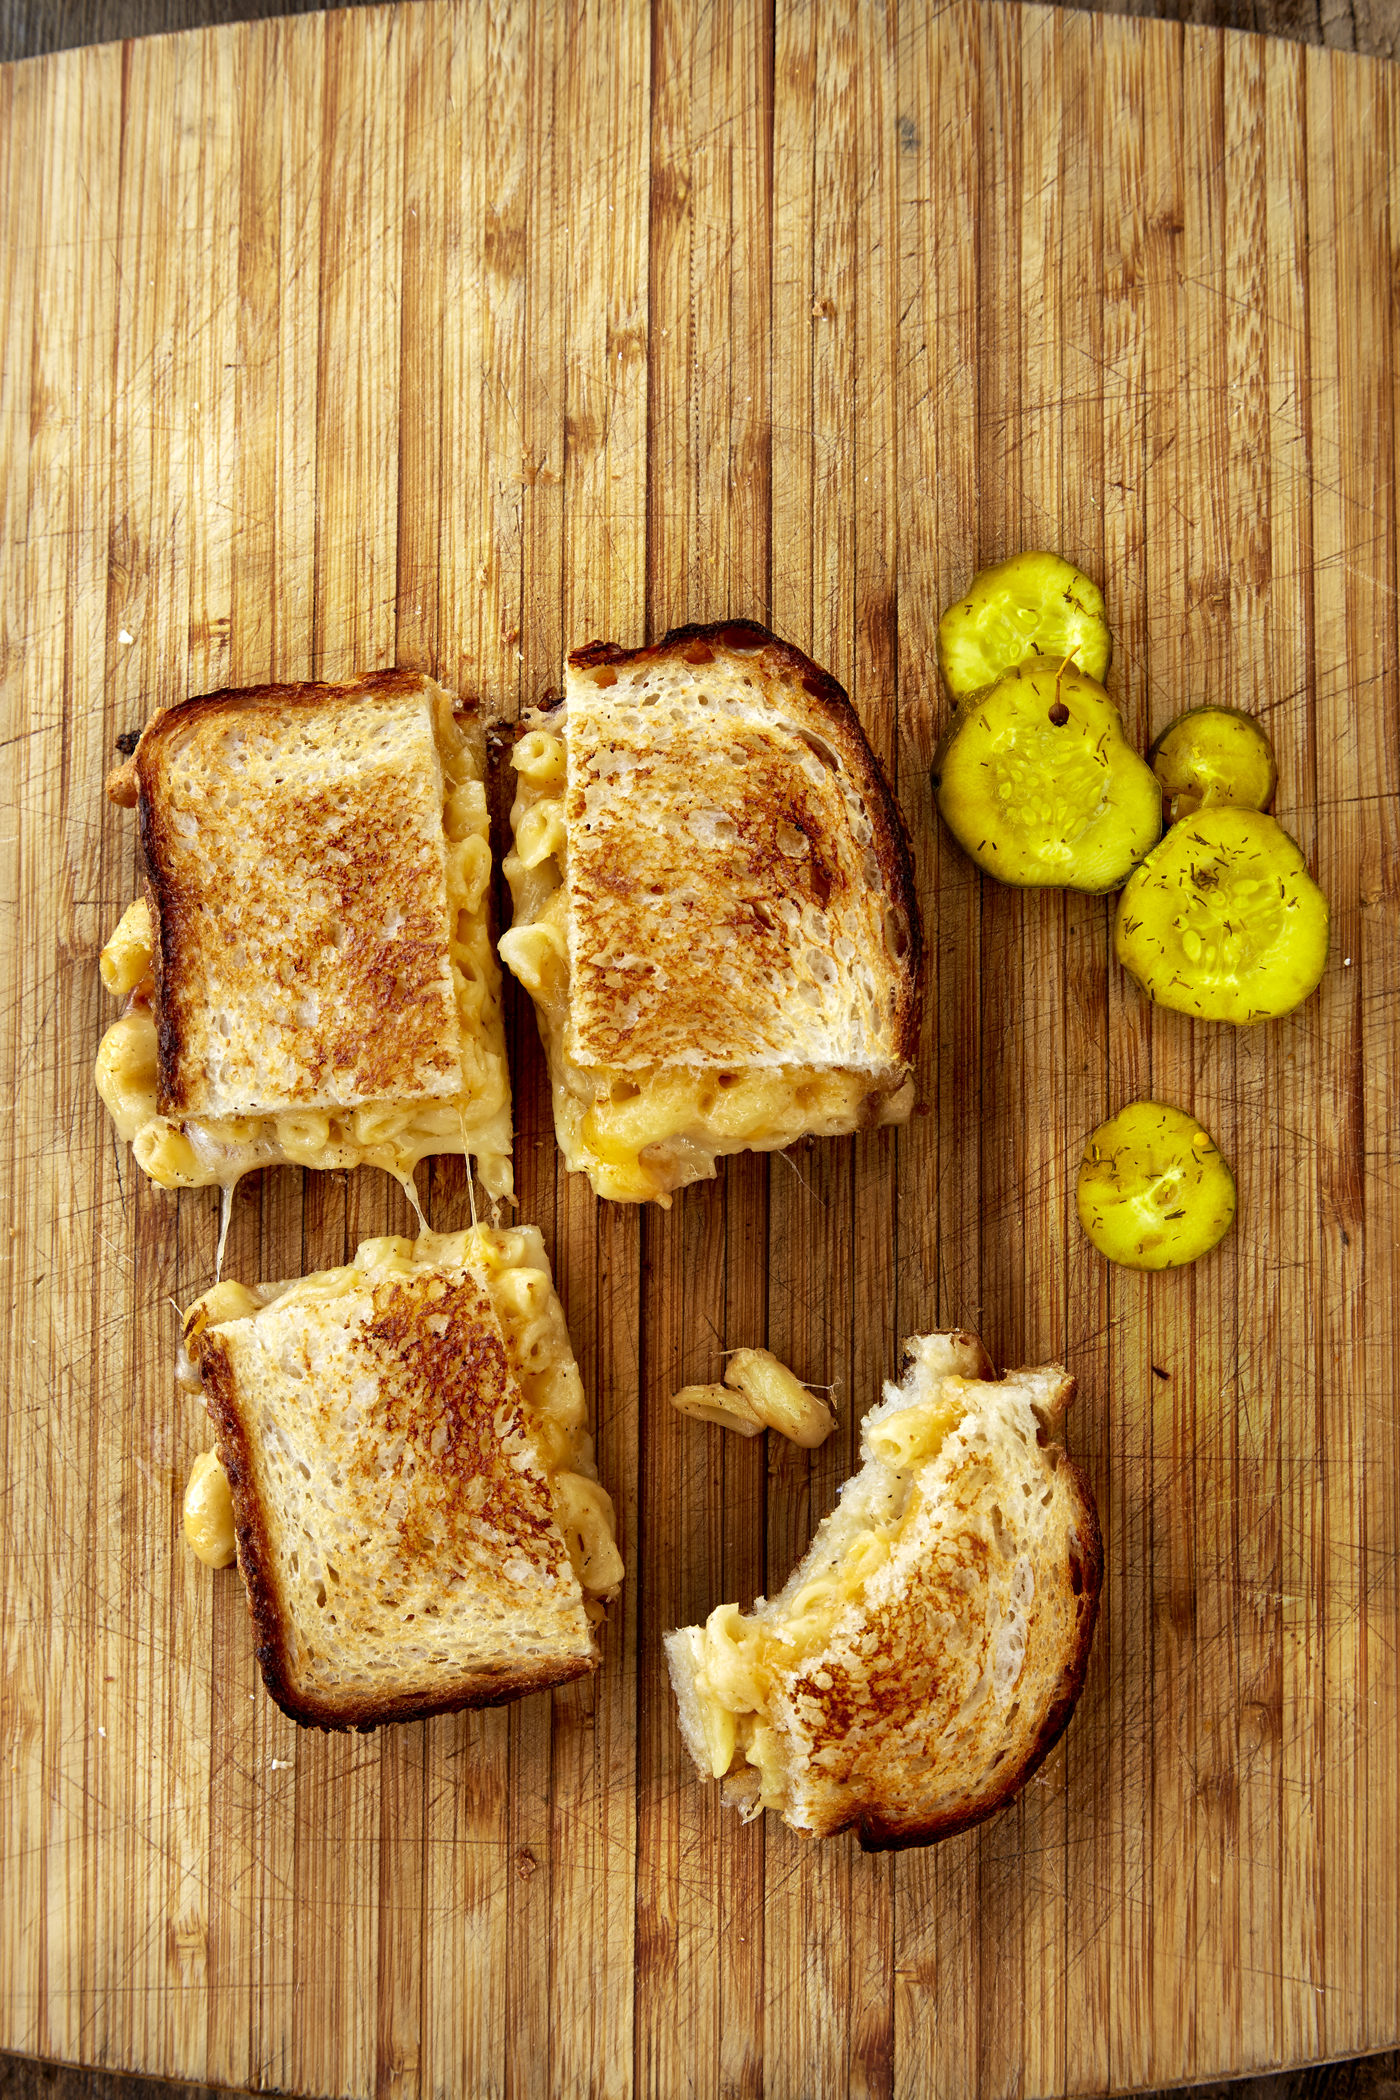 Mac_and_Cheese_Grilled_139.jpg